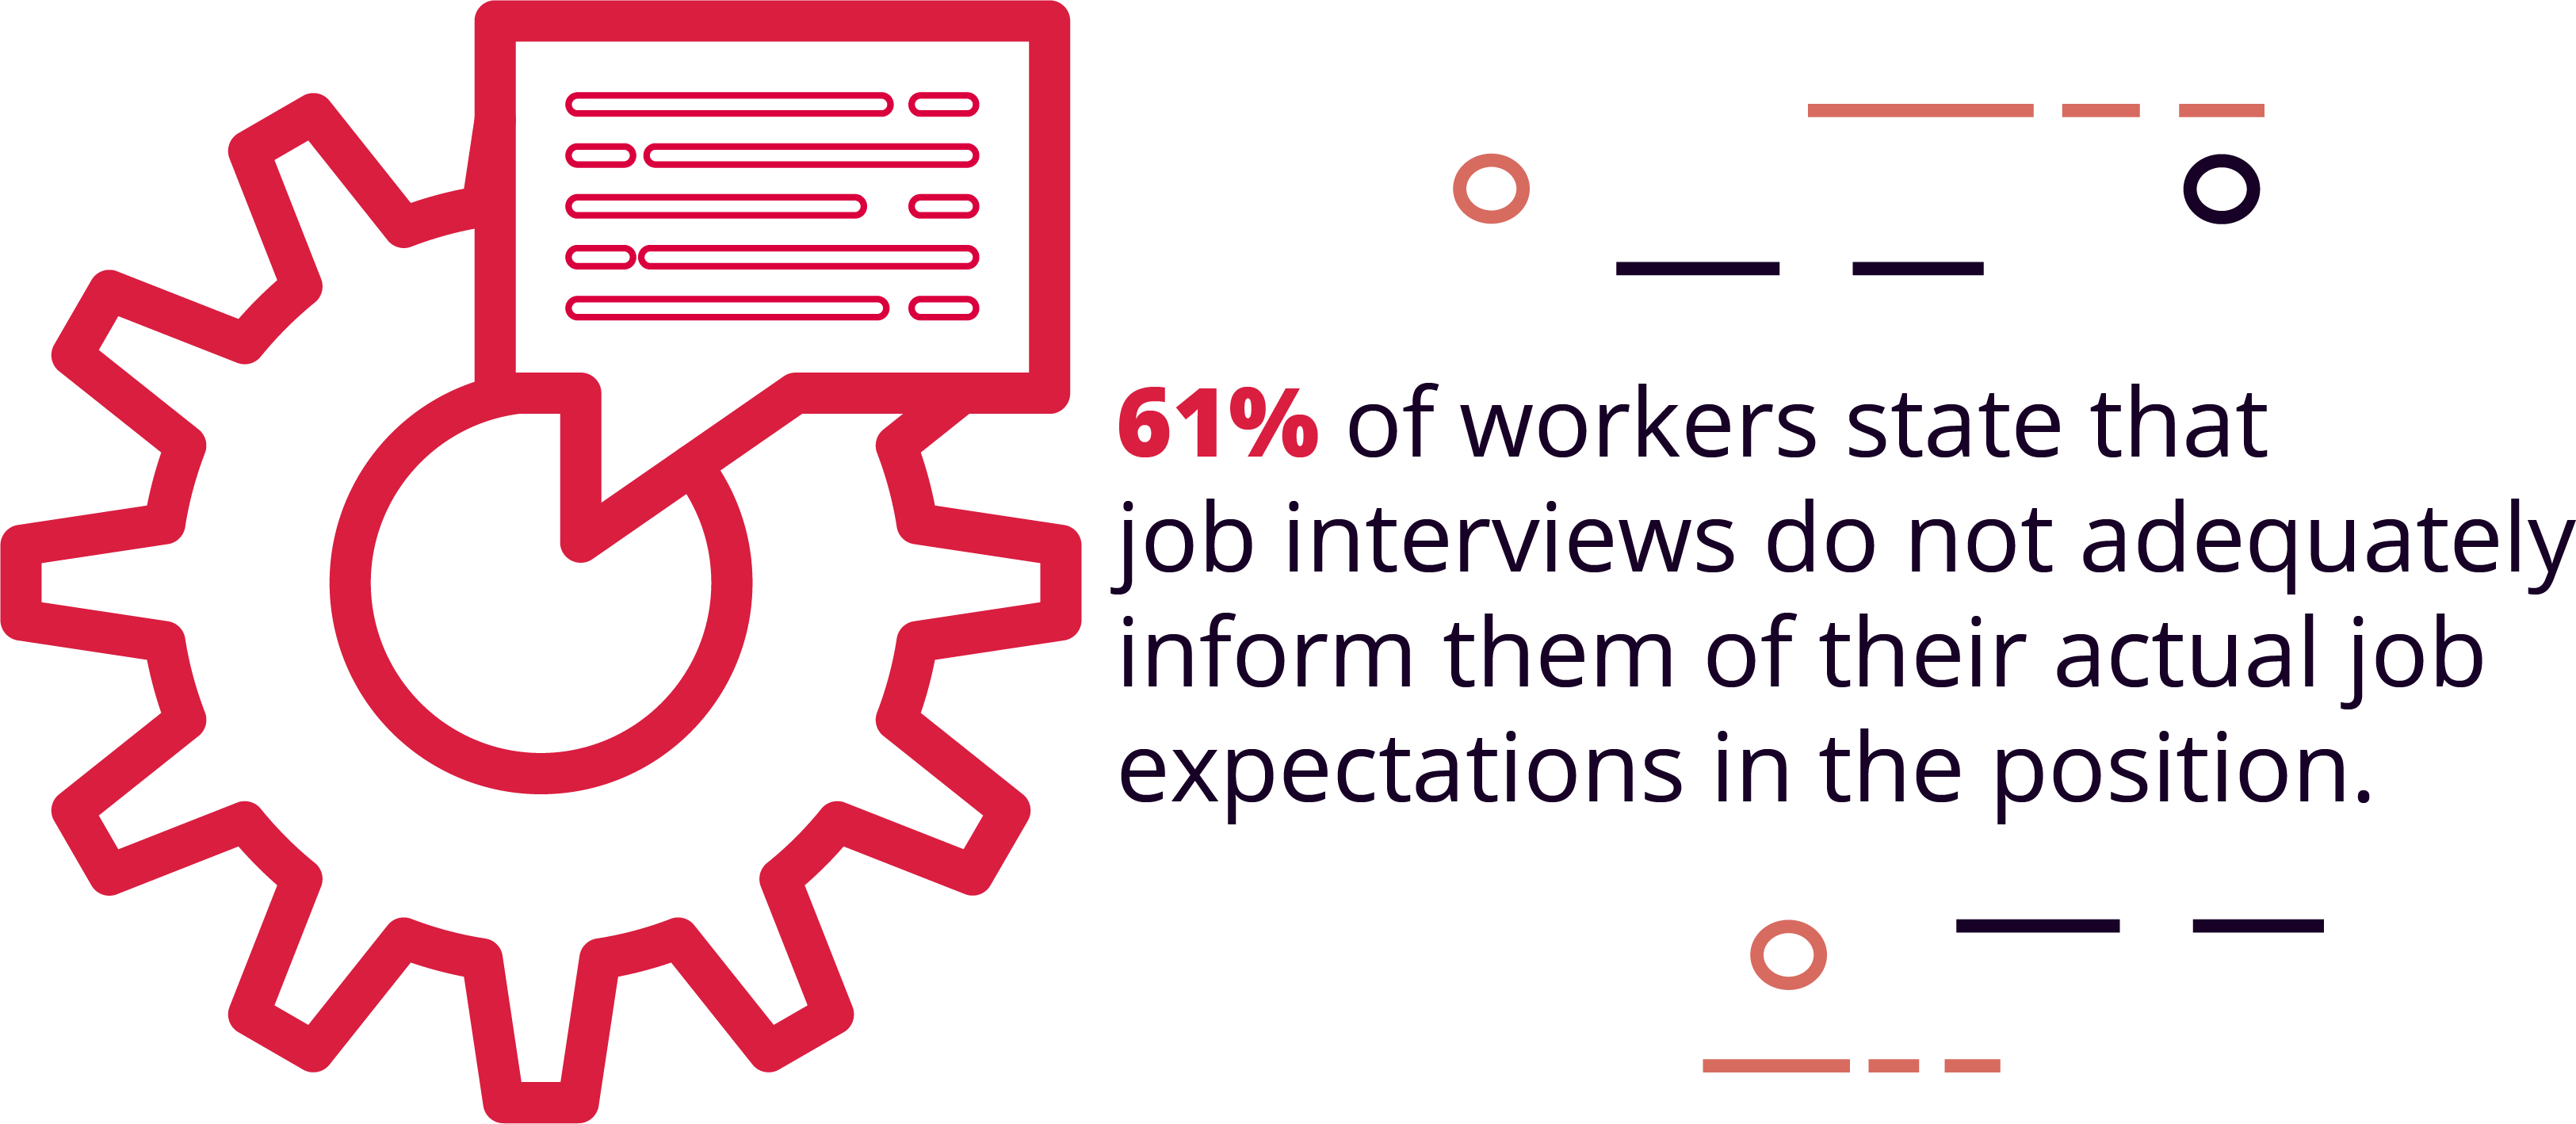 61% of workers state that job interviews do not adequately inform them of their actual job expectations in the position